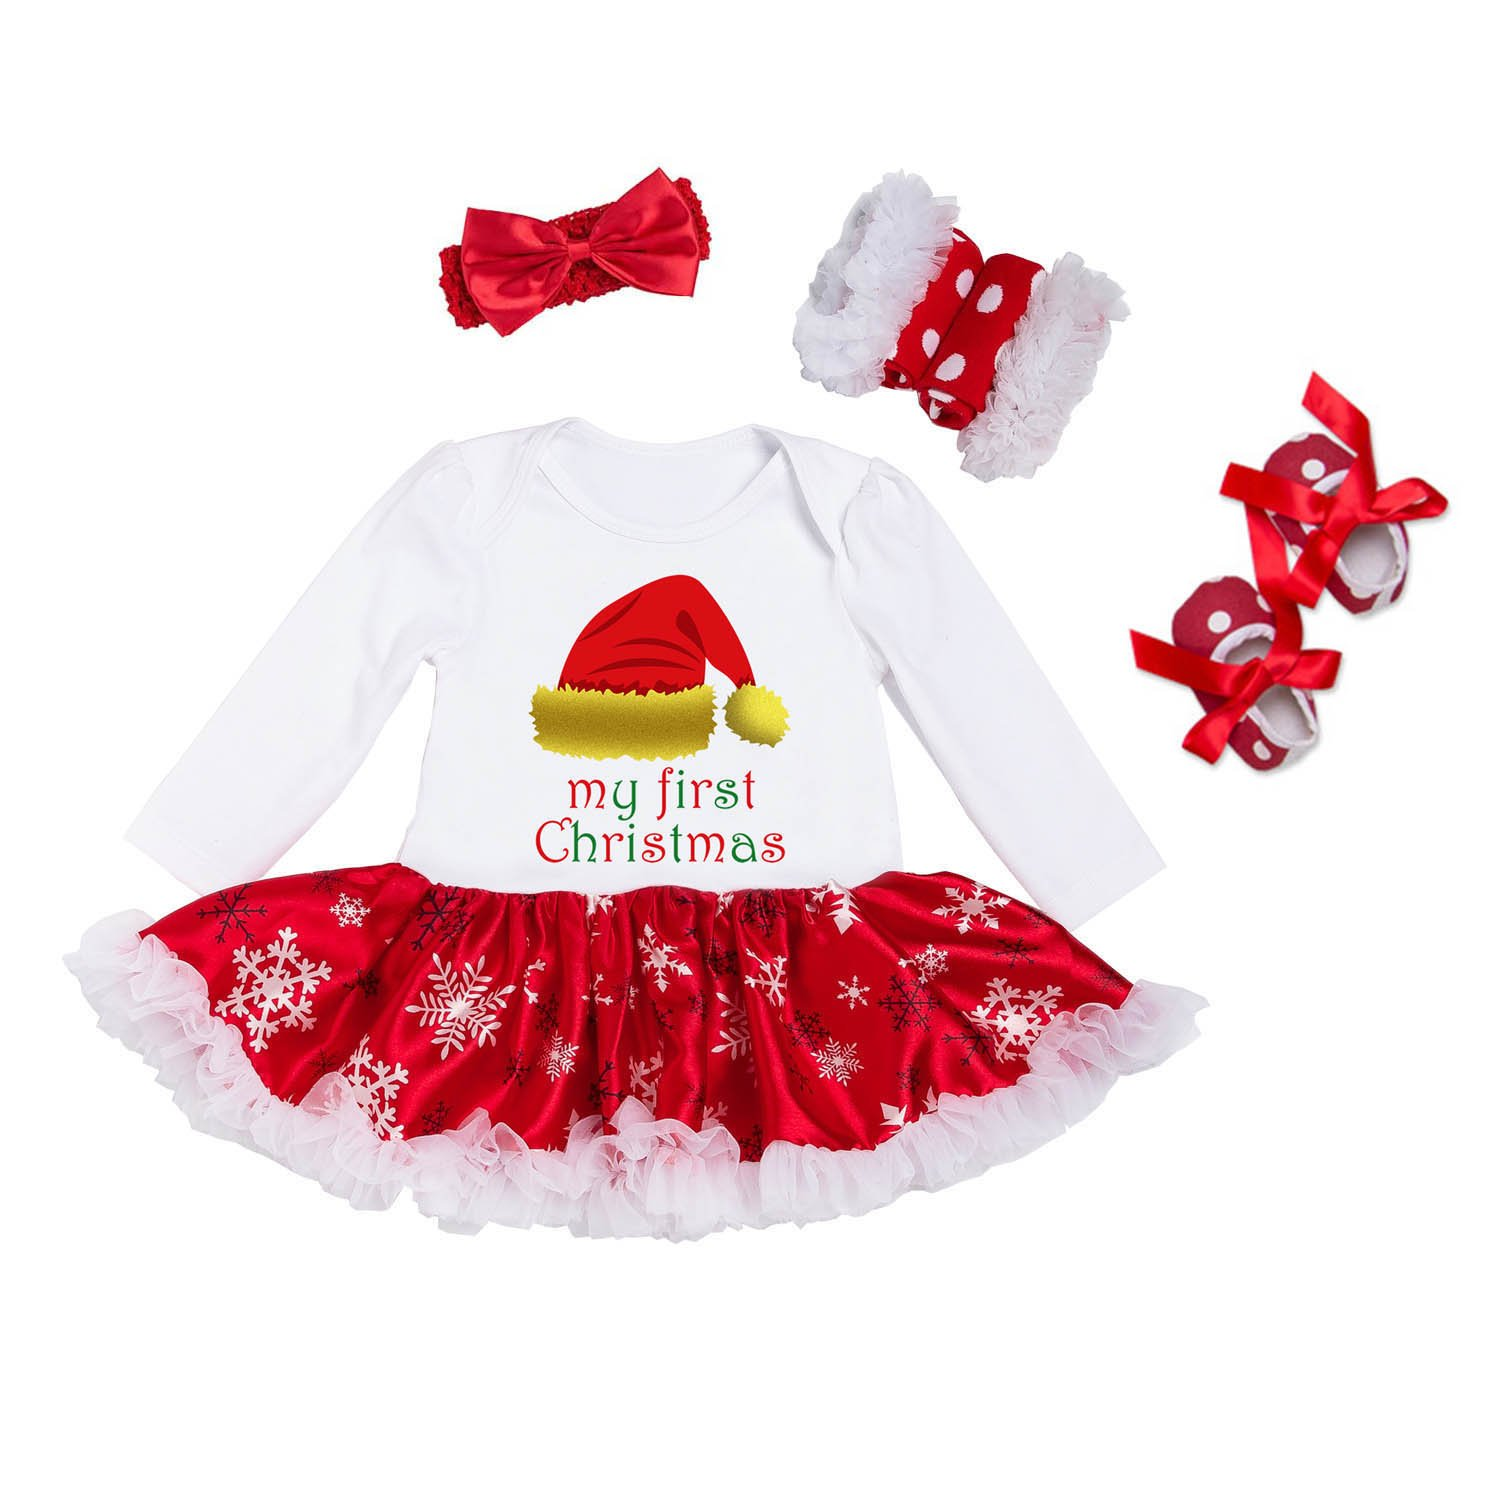 Amazon.com: BabyPreg Infant Baby Girl My First Christmas Outfits ...